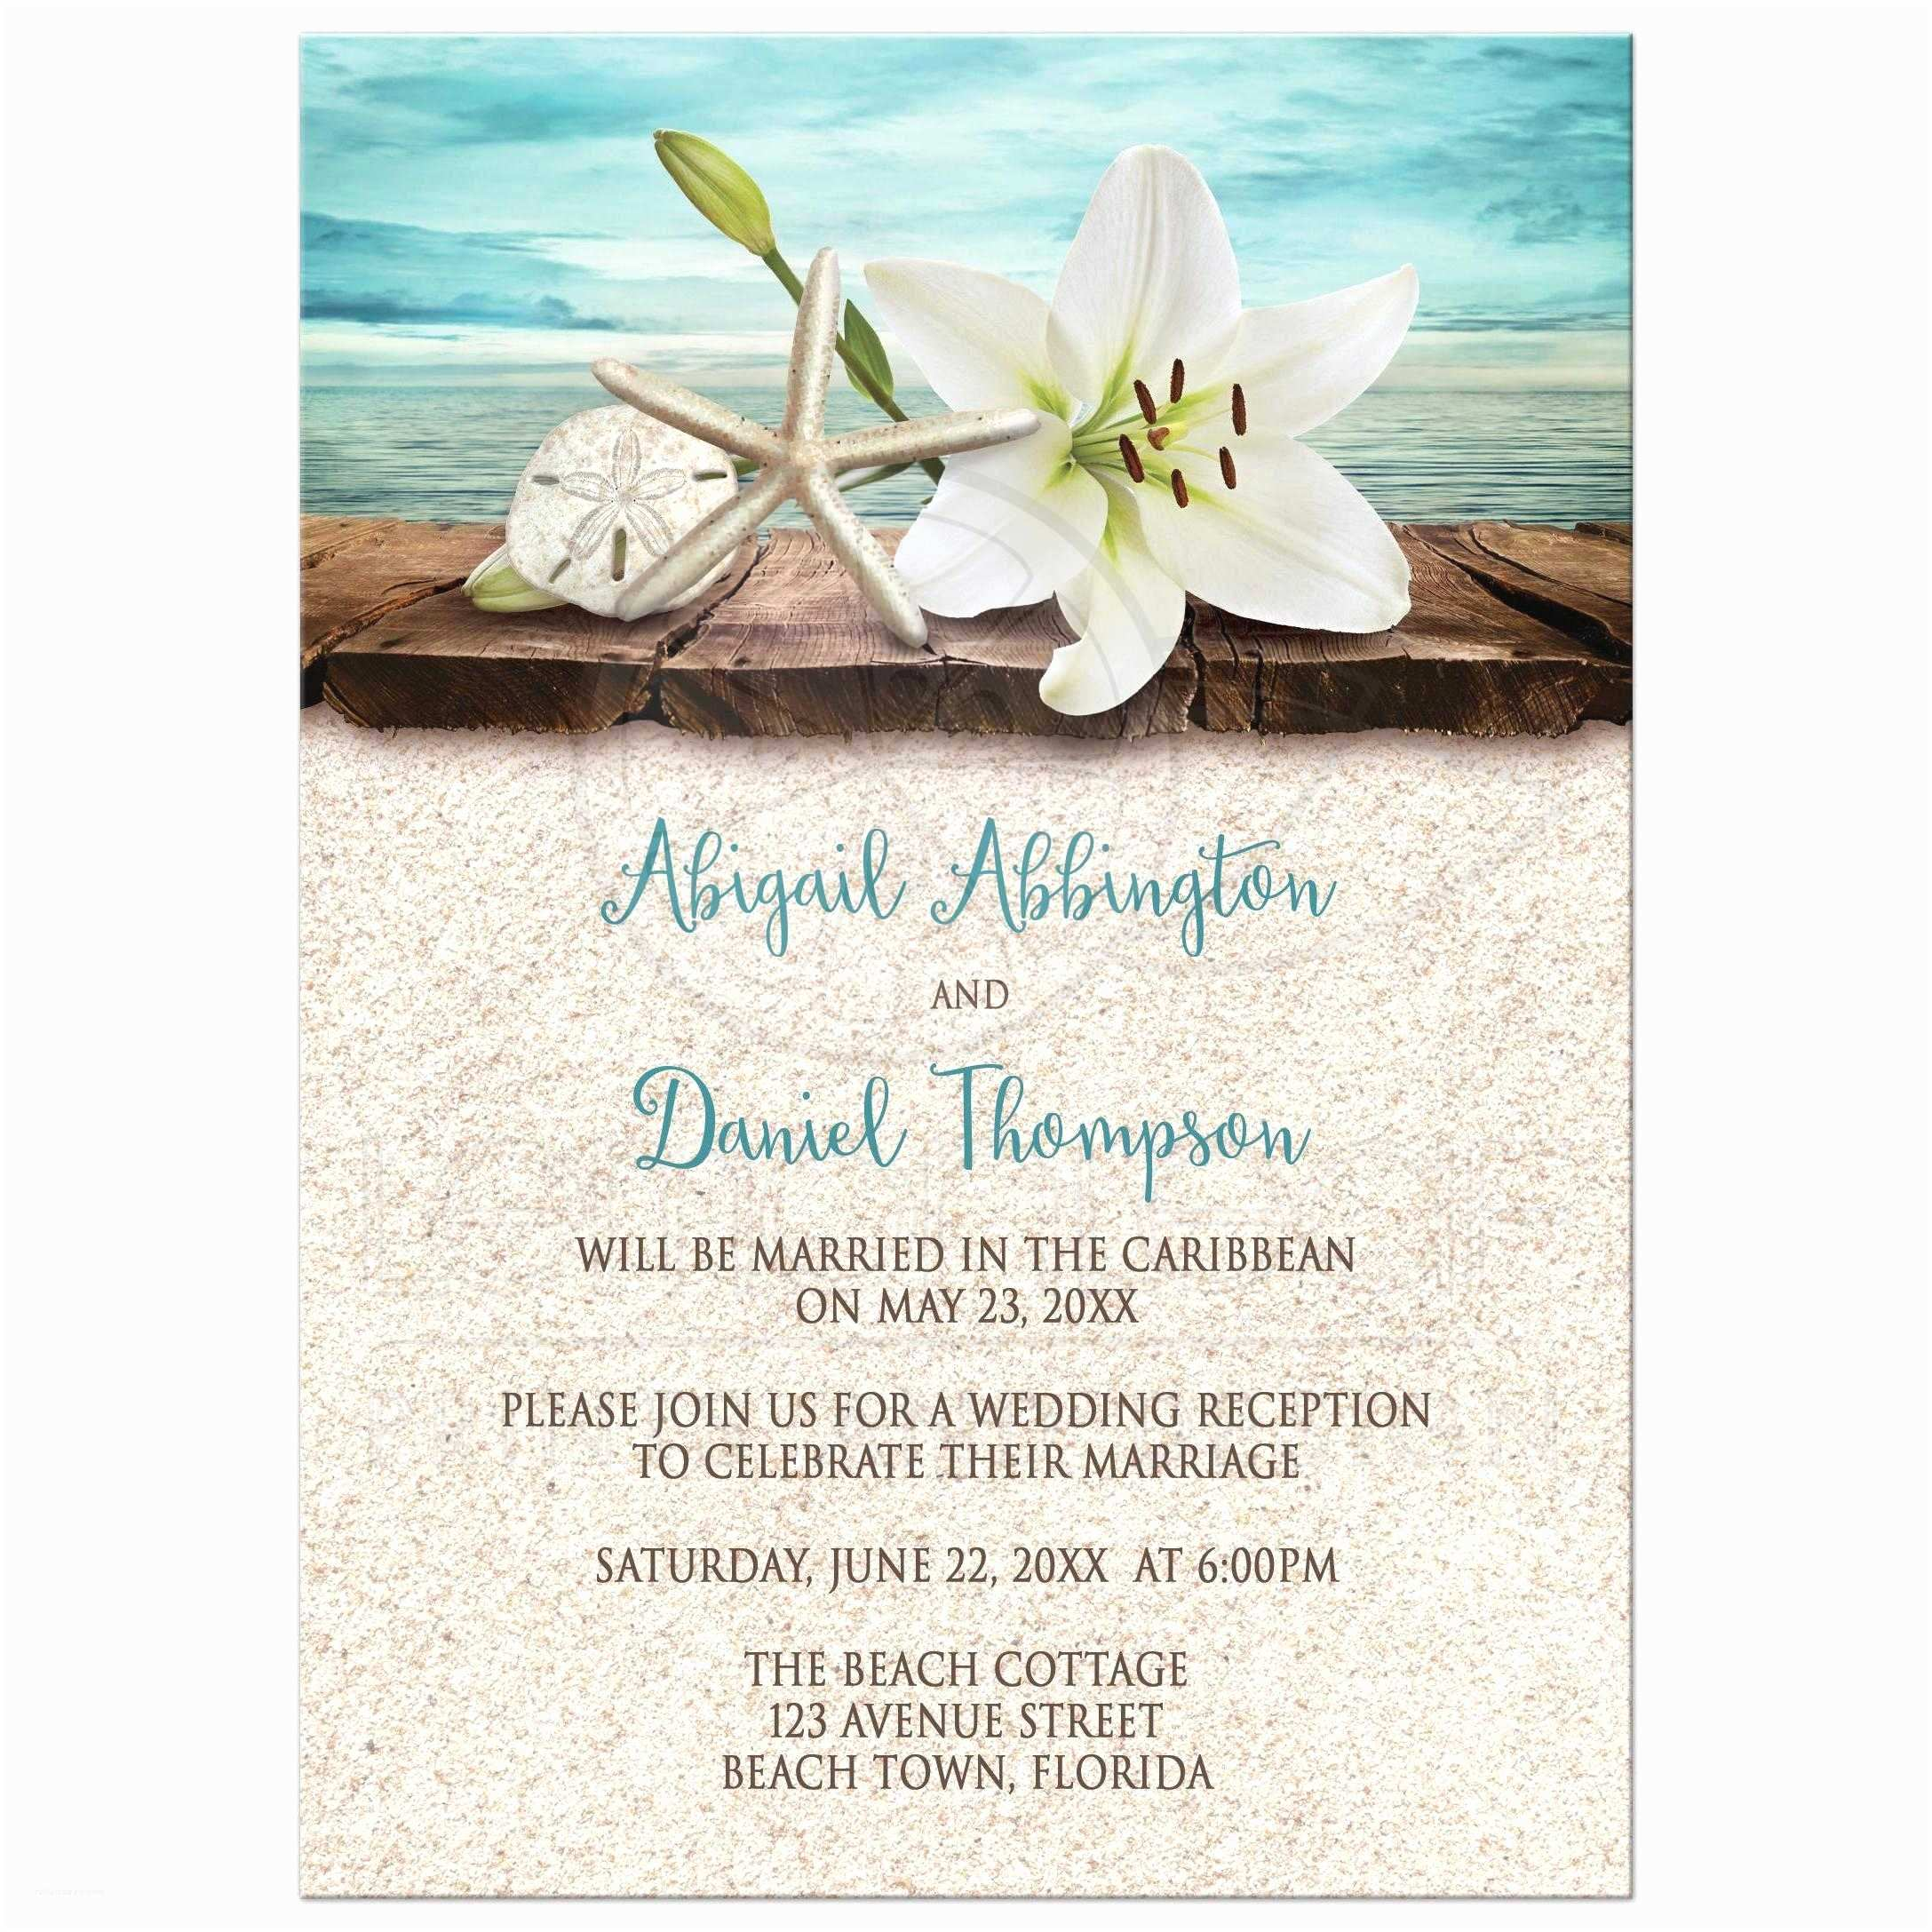 Wedding Reception Invitations Wedding Invitations Beach Reception Invitations Invite